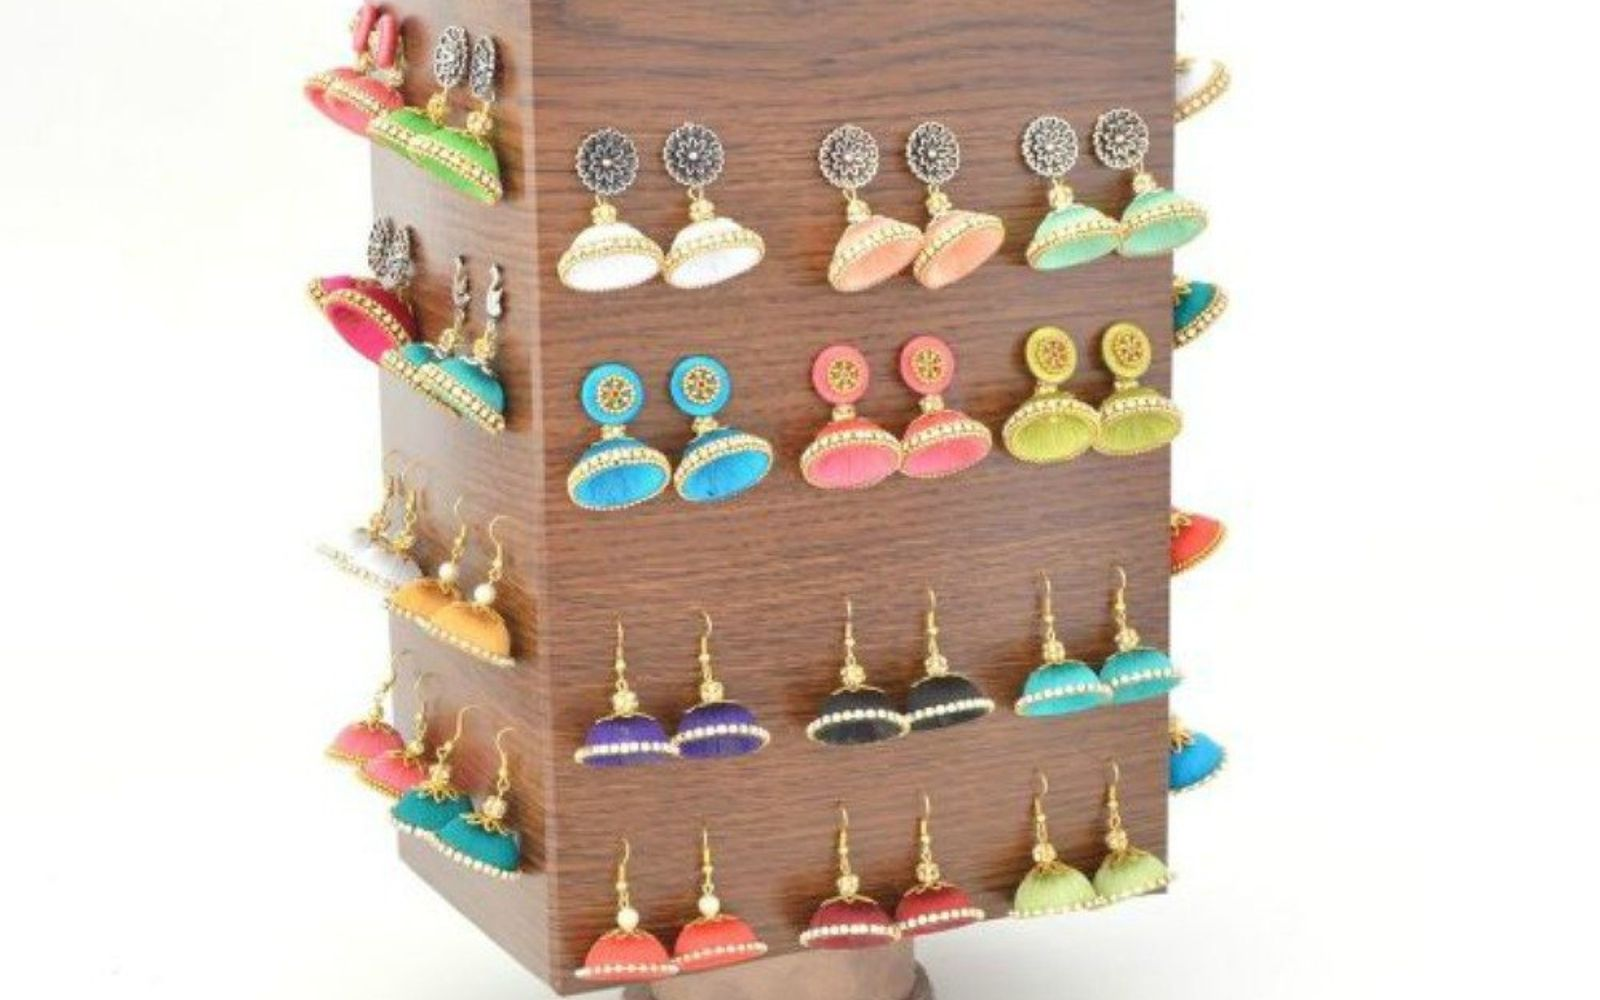 s 21 jewelry organizing ideas that are better than a jewelry box, organizing, This rotating display from a cereal box